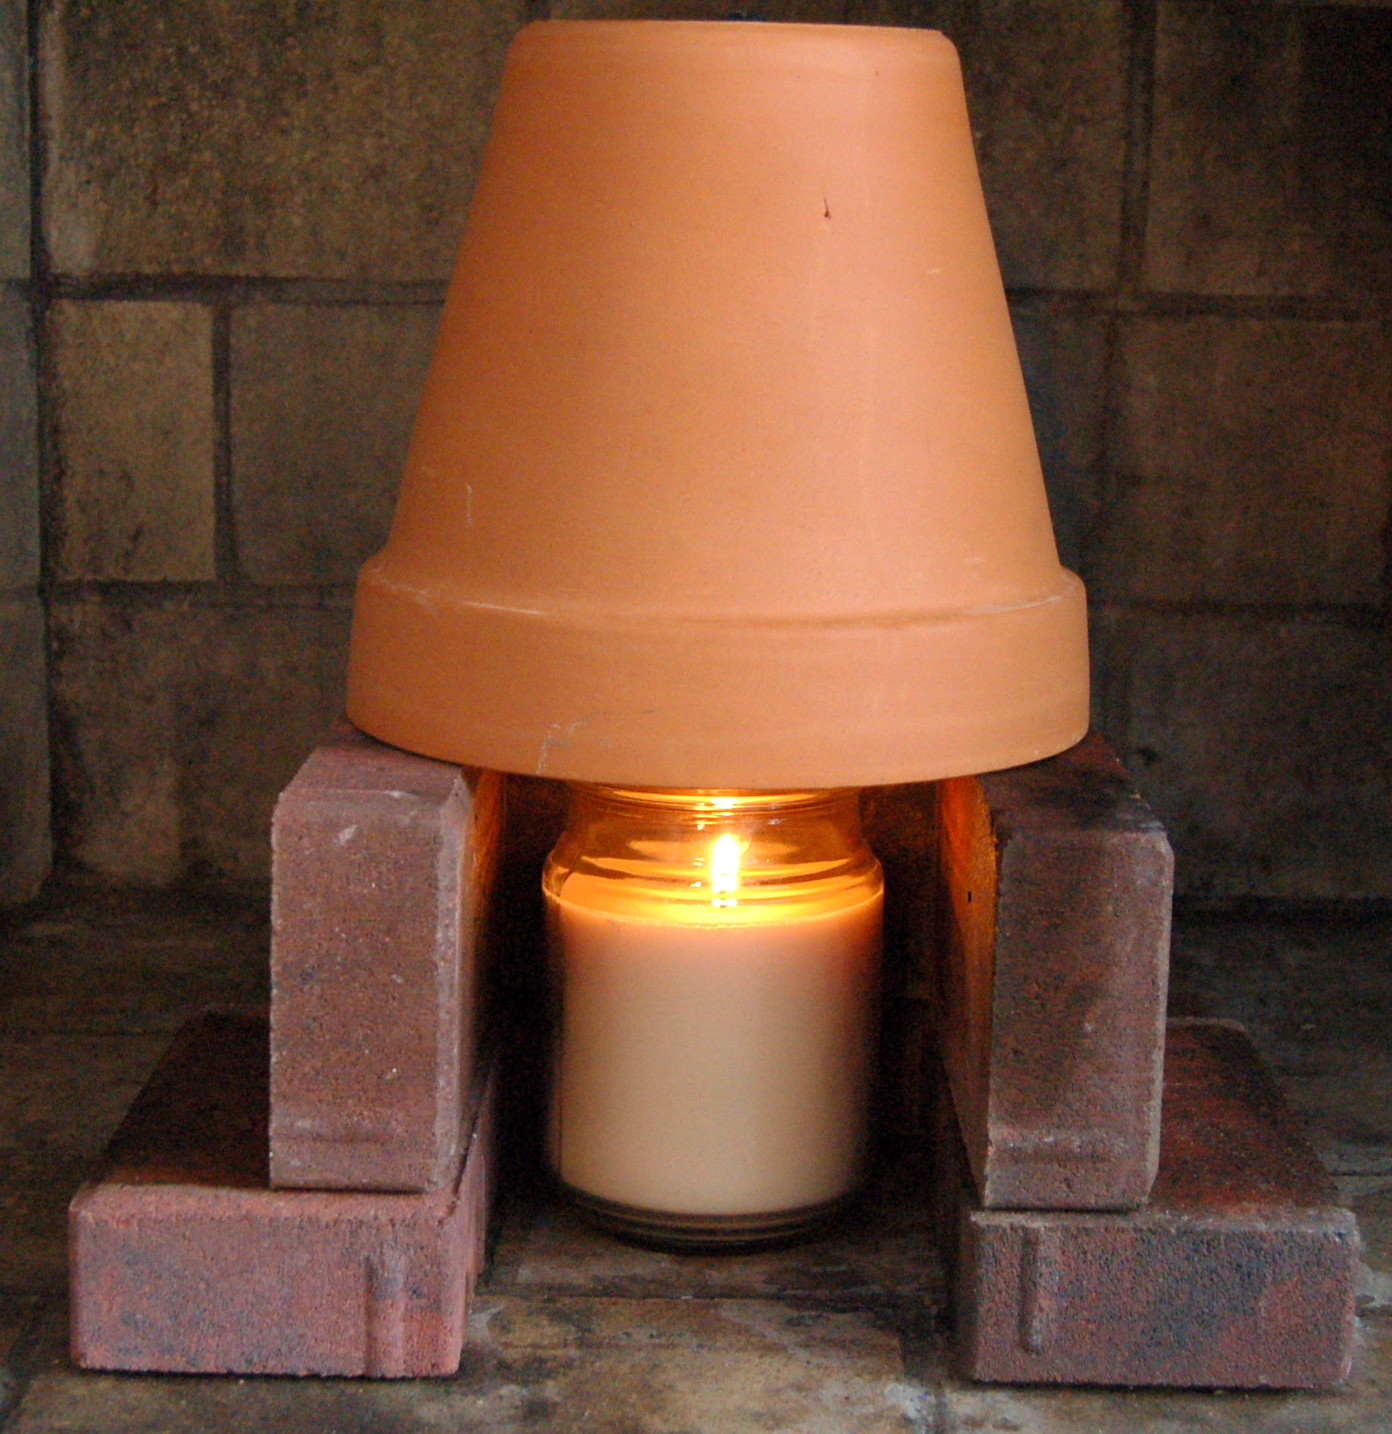 DIY Terracotta Heater for added warmth in your home